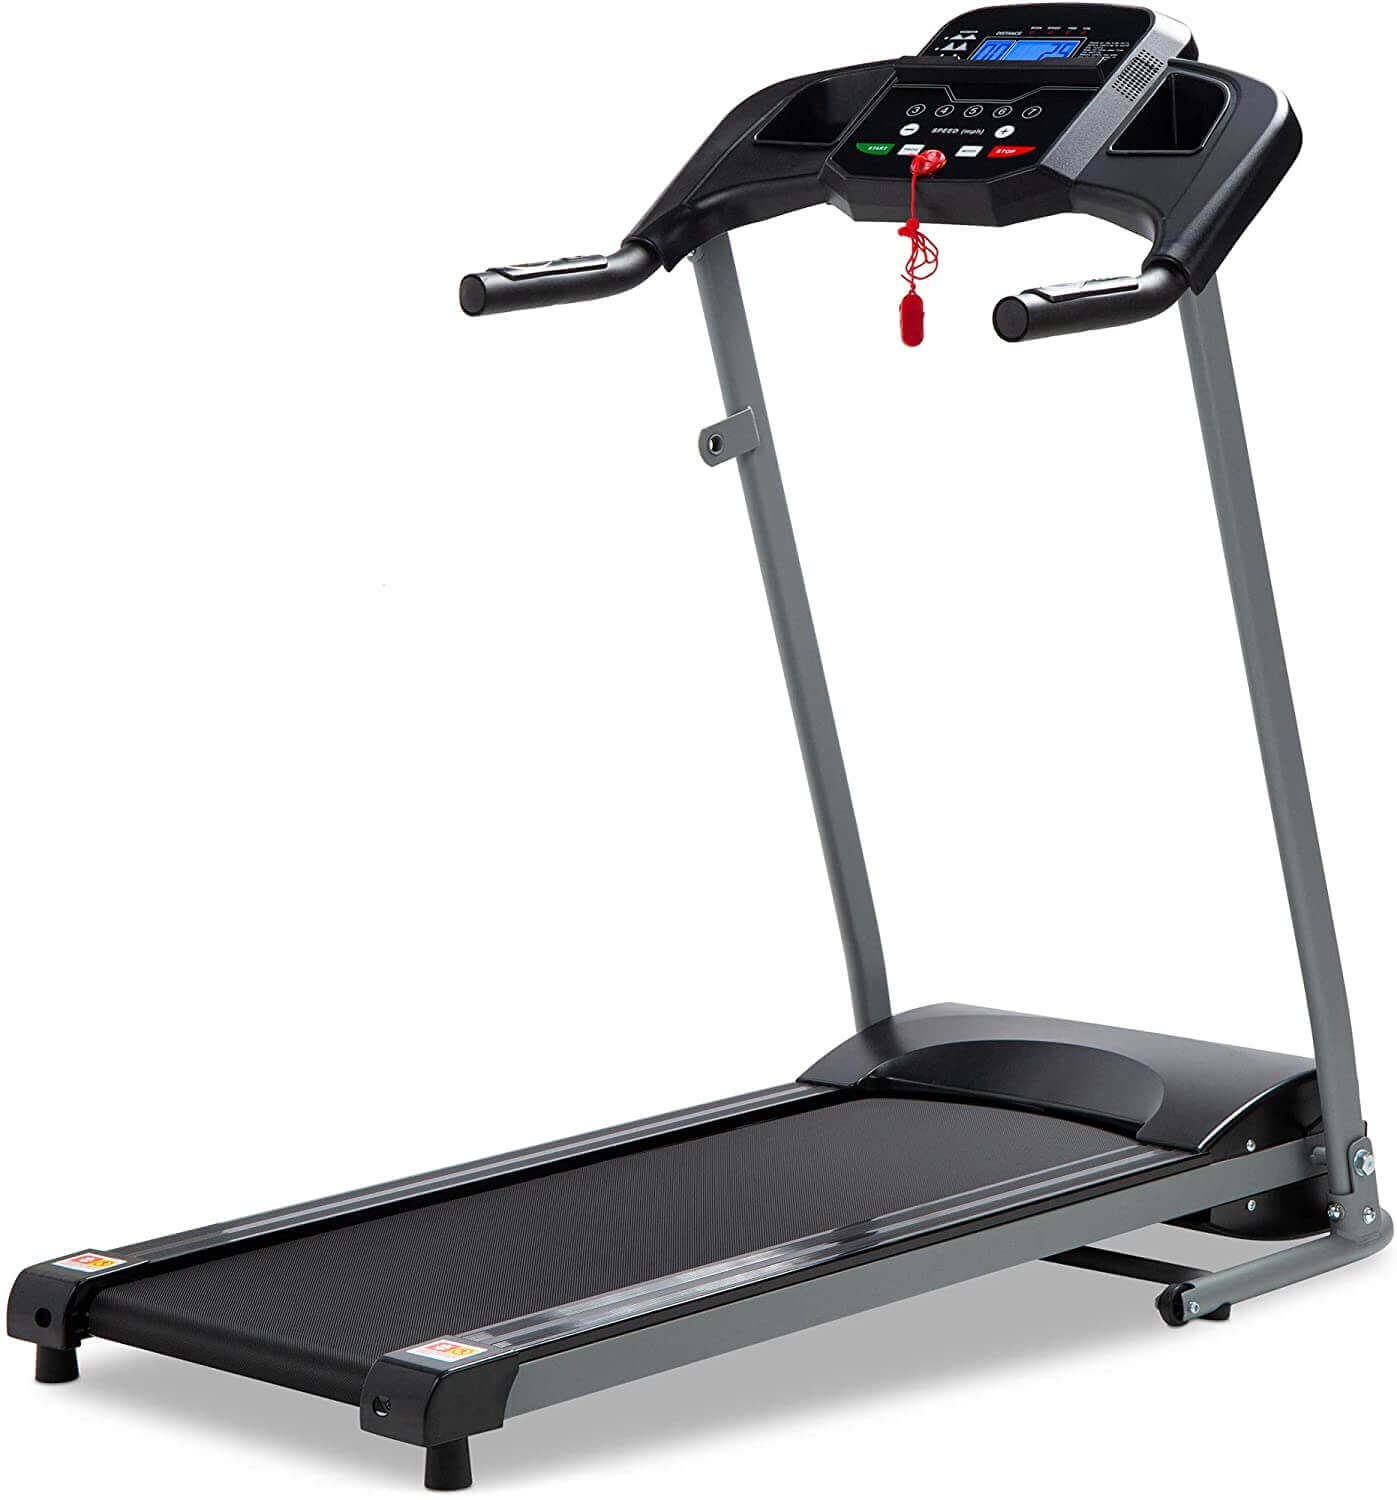 800W Folding Electric Treadmill, Motorized Exercise Machine w/Wheels, Safety Key, Heart Sensor